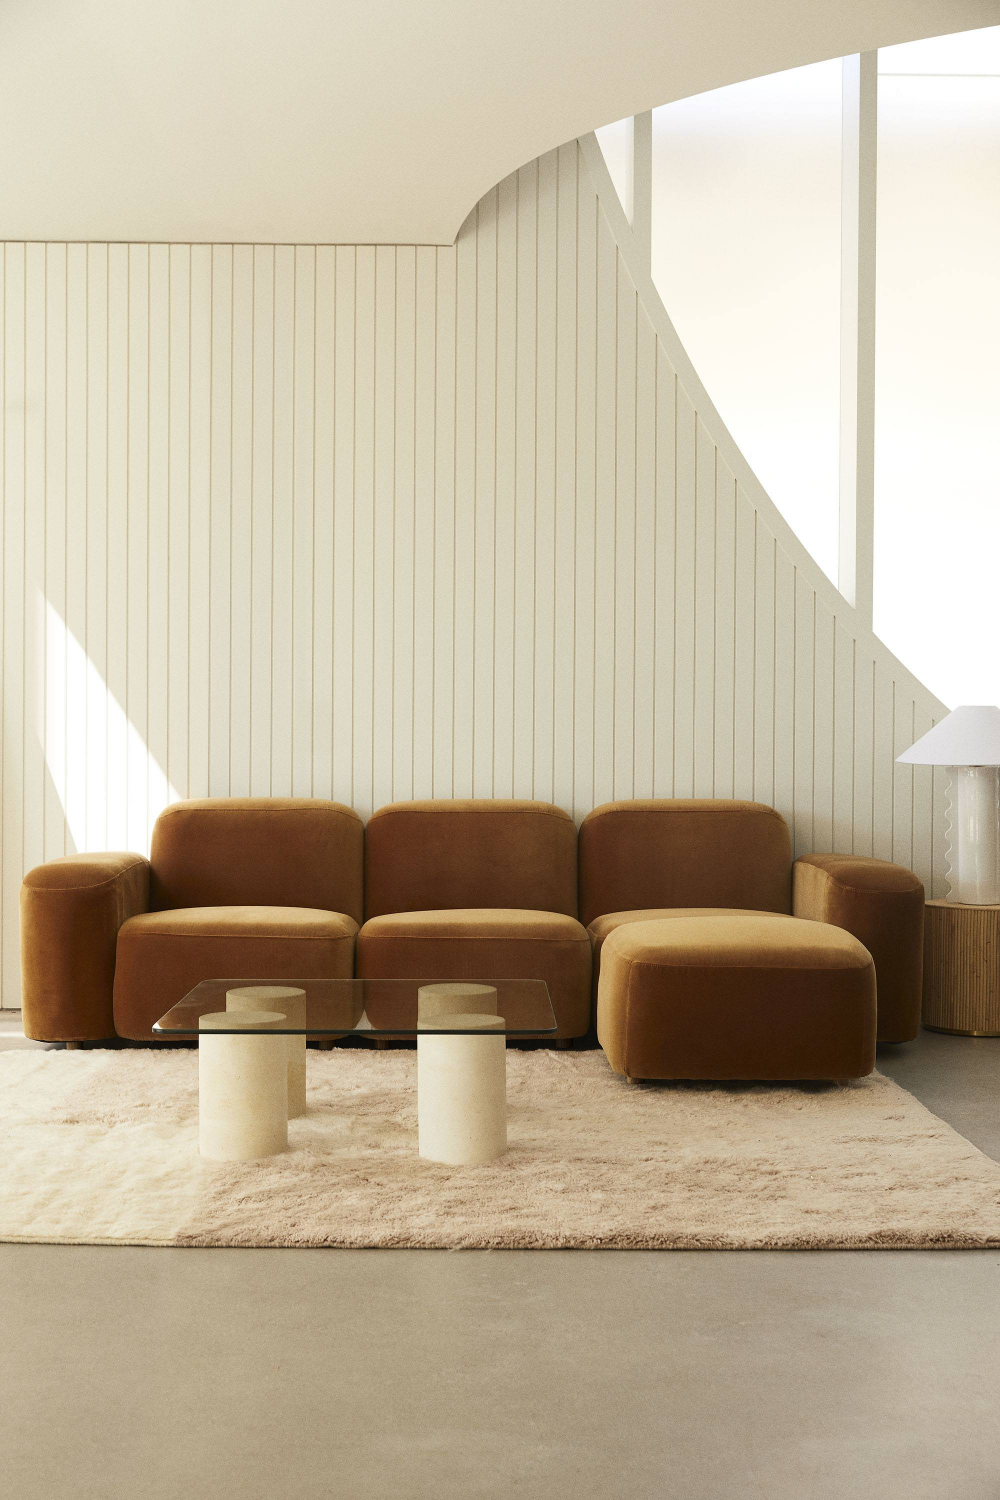 SOL Is Sarah Ellison's 1970s Inspired Geometric Furniture Collection